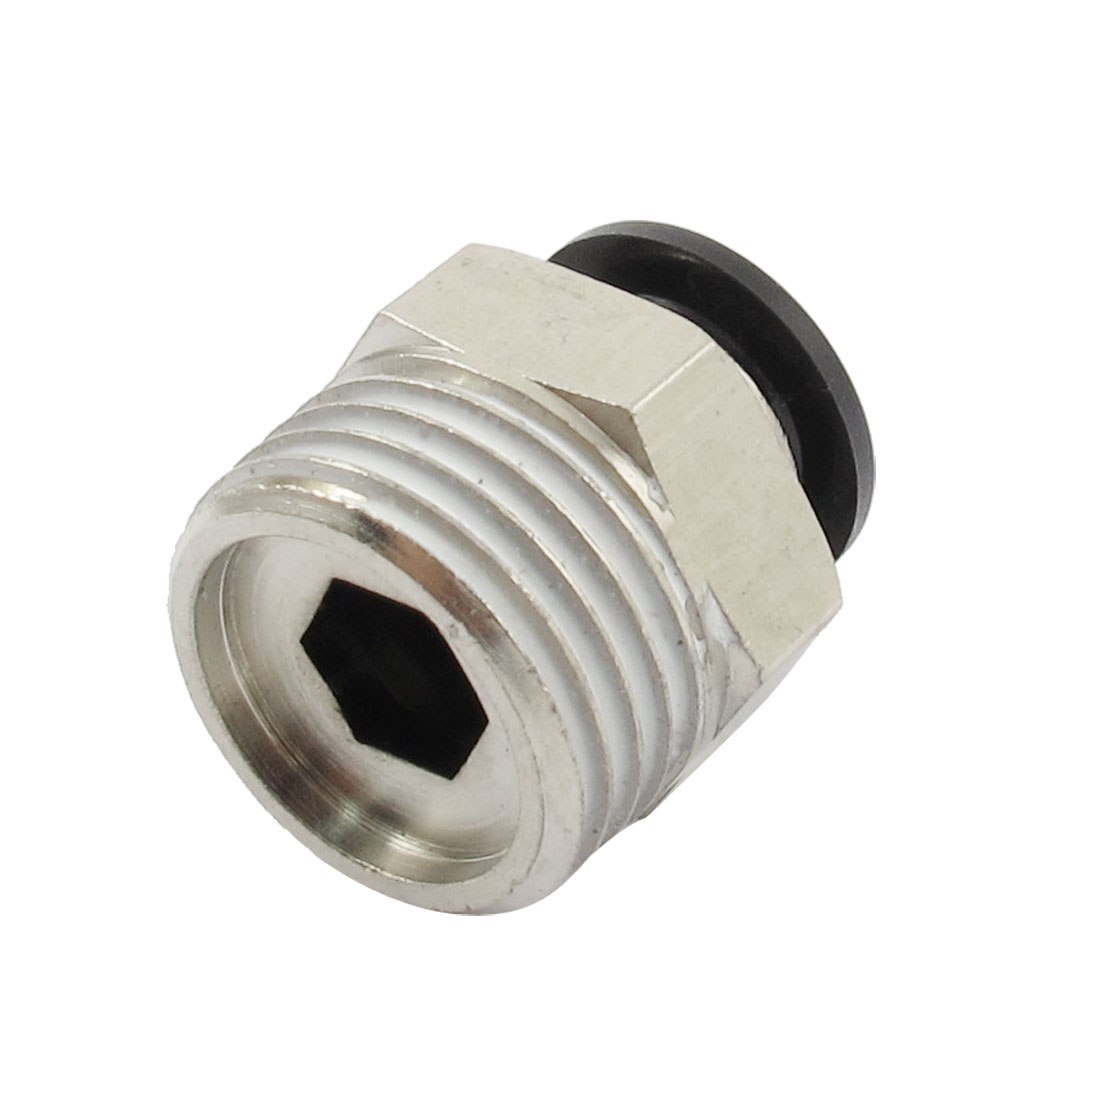 "1/2"" PT Male Thread 10mm Push In Joint Pneumatic Connector Quick Fitting"